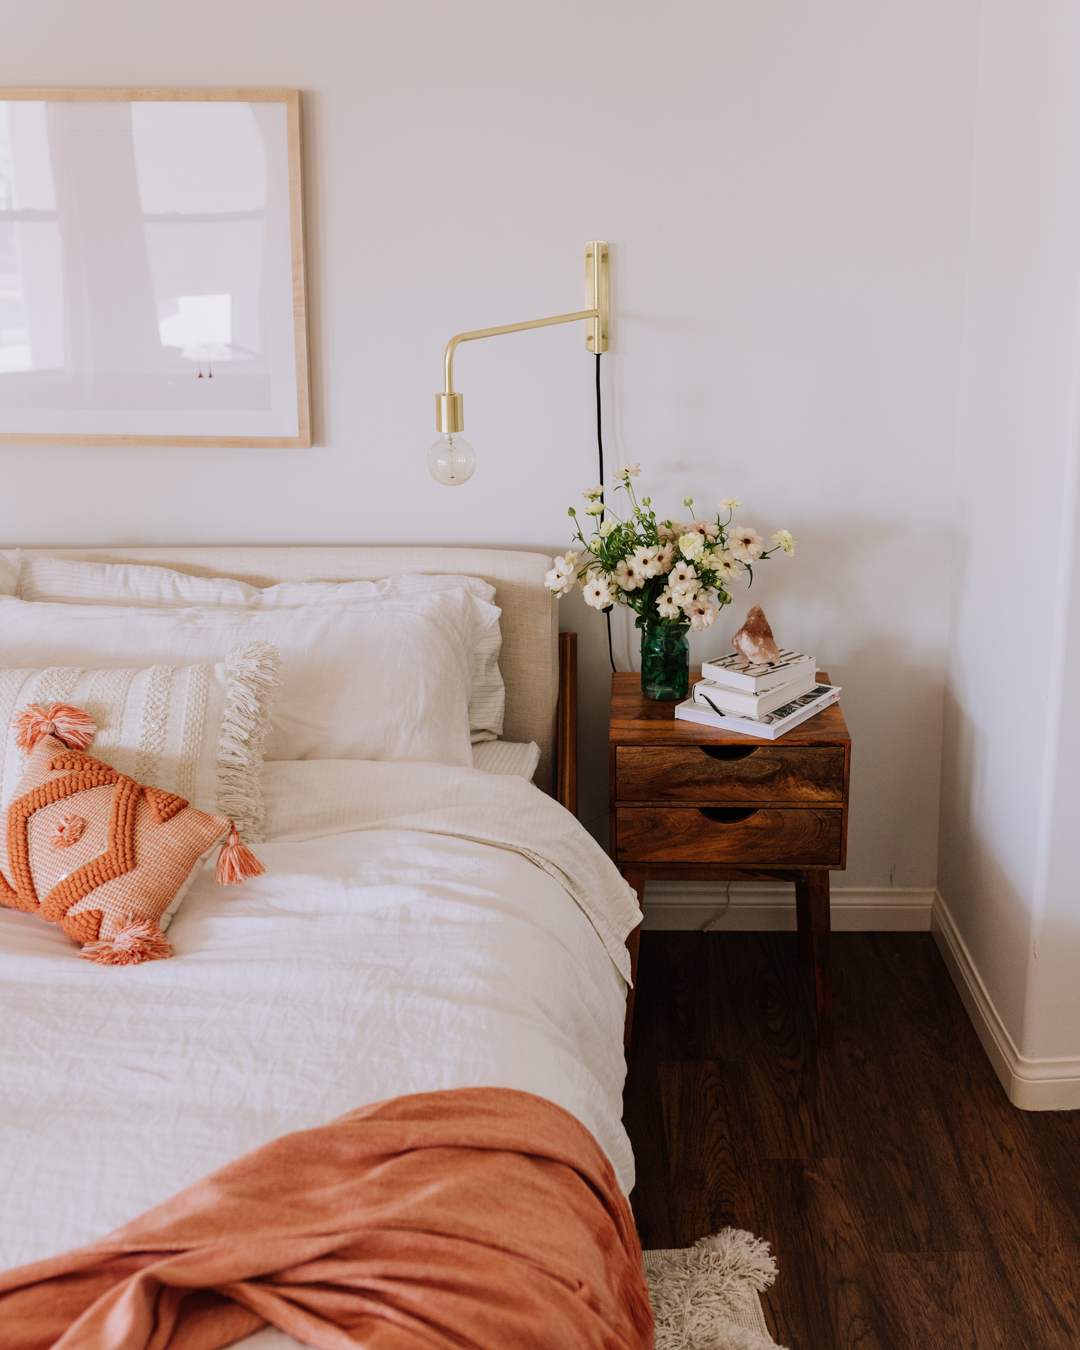 a bed made to start the day, and flowers on the nightstand! | thelovedesignedlife.com #bedrrom #morningroutine